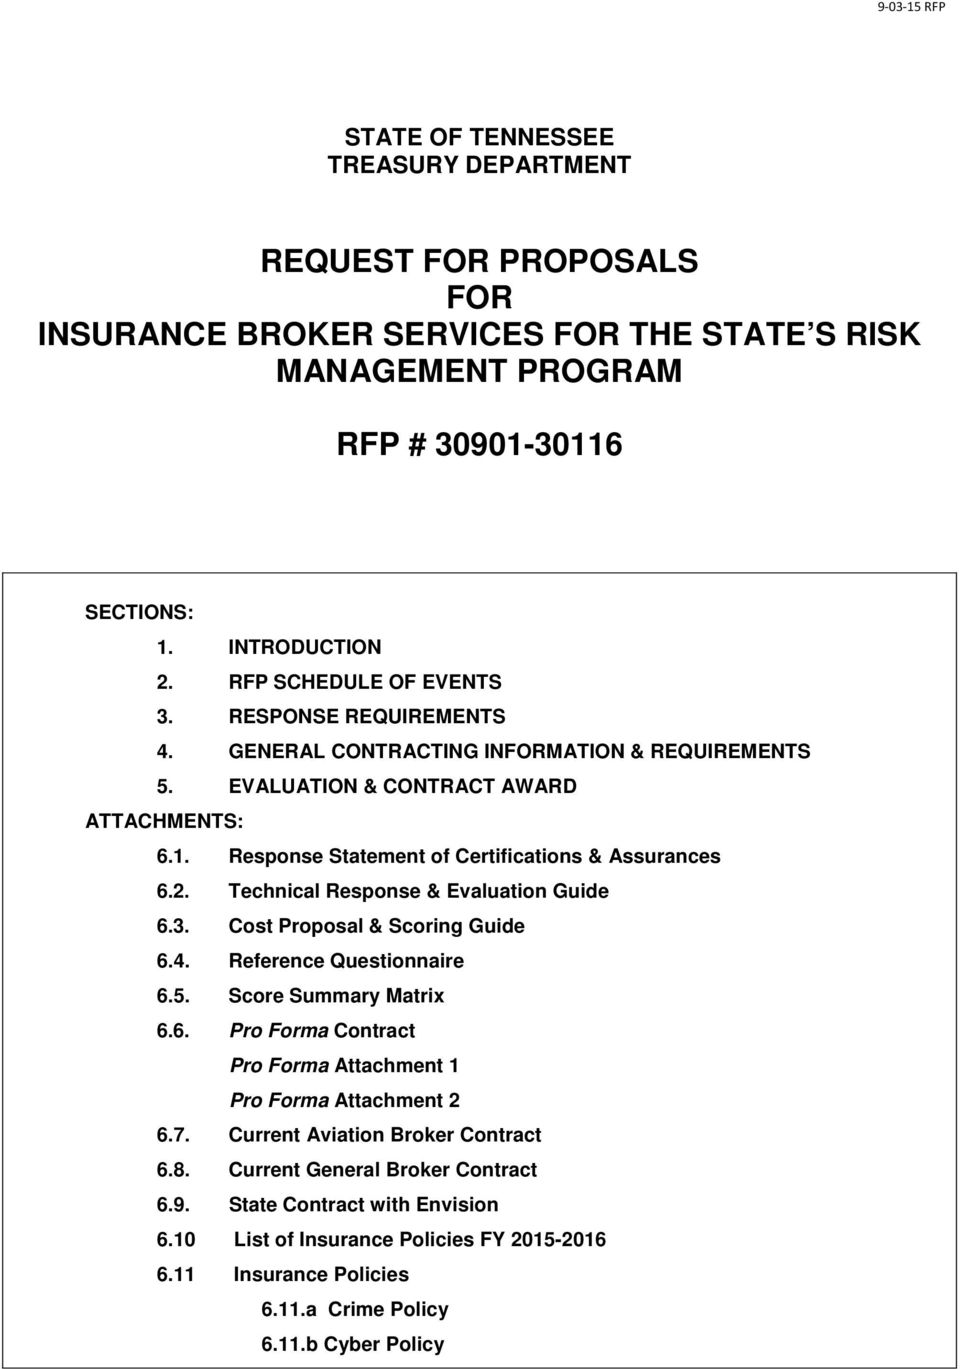 rfp scoring matrix template - request for proposals for insurance broker services for